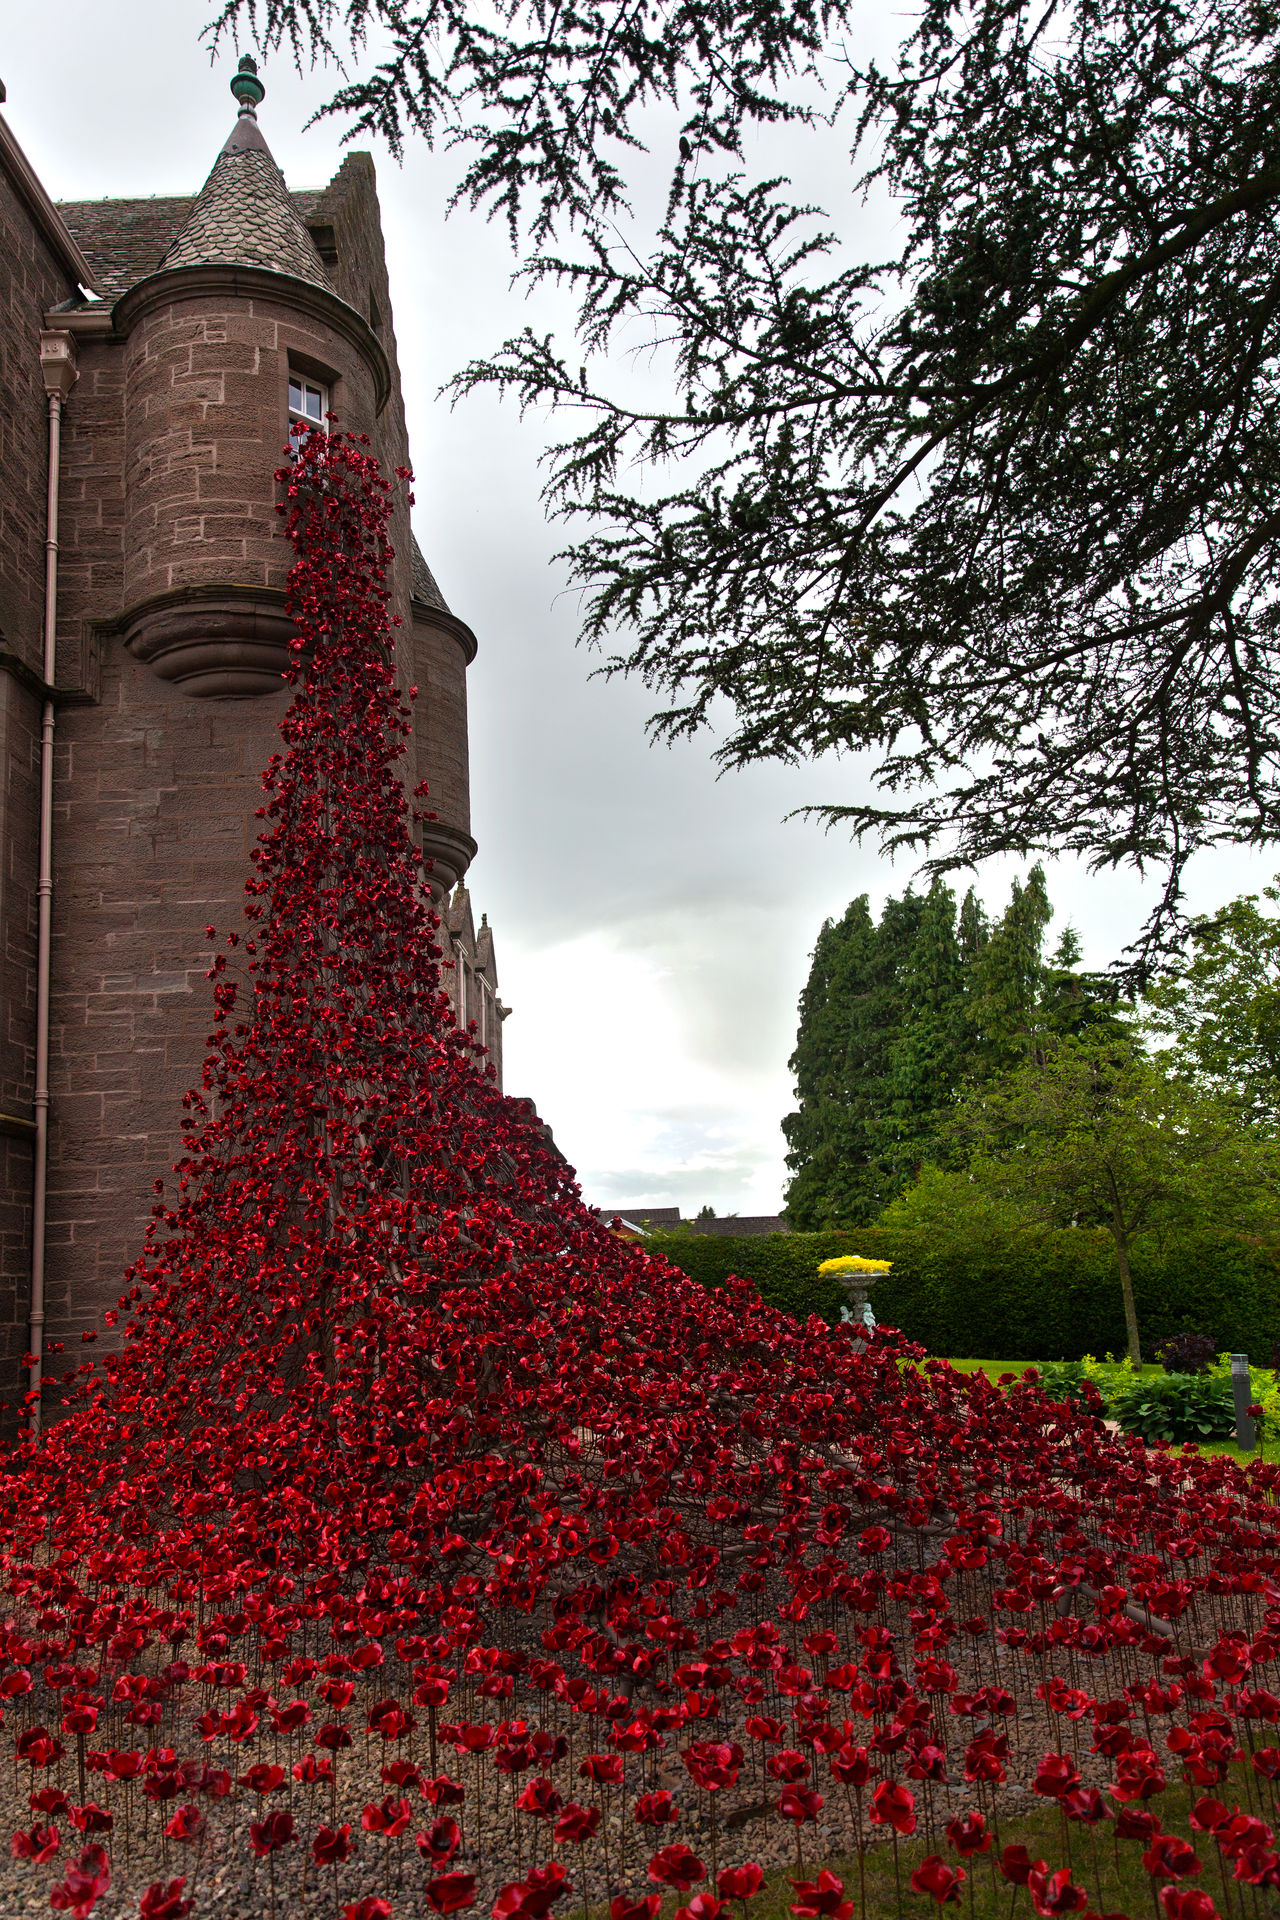 Art Black Wach Castle Firstworldwar Lest We Forget Lestweforget Paul Cummins Perth Perthshire Poppies  Poppies Field Poppy Poppy Flowers Rememberance Day Rememberancesunday Remembrance Scotland Scottish Scottish Castle Scottish Regiment Scottish Soliders The Black Watch Theblackwatch Tree Ww1